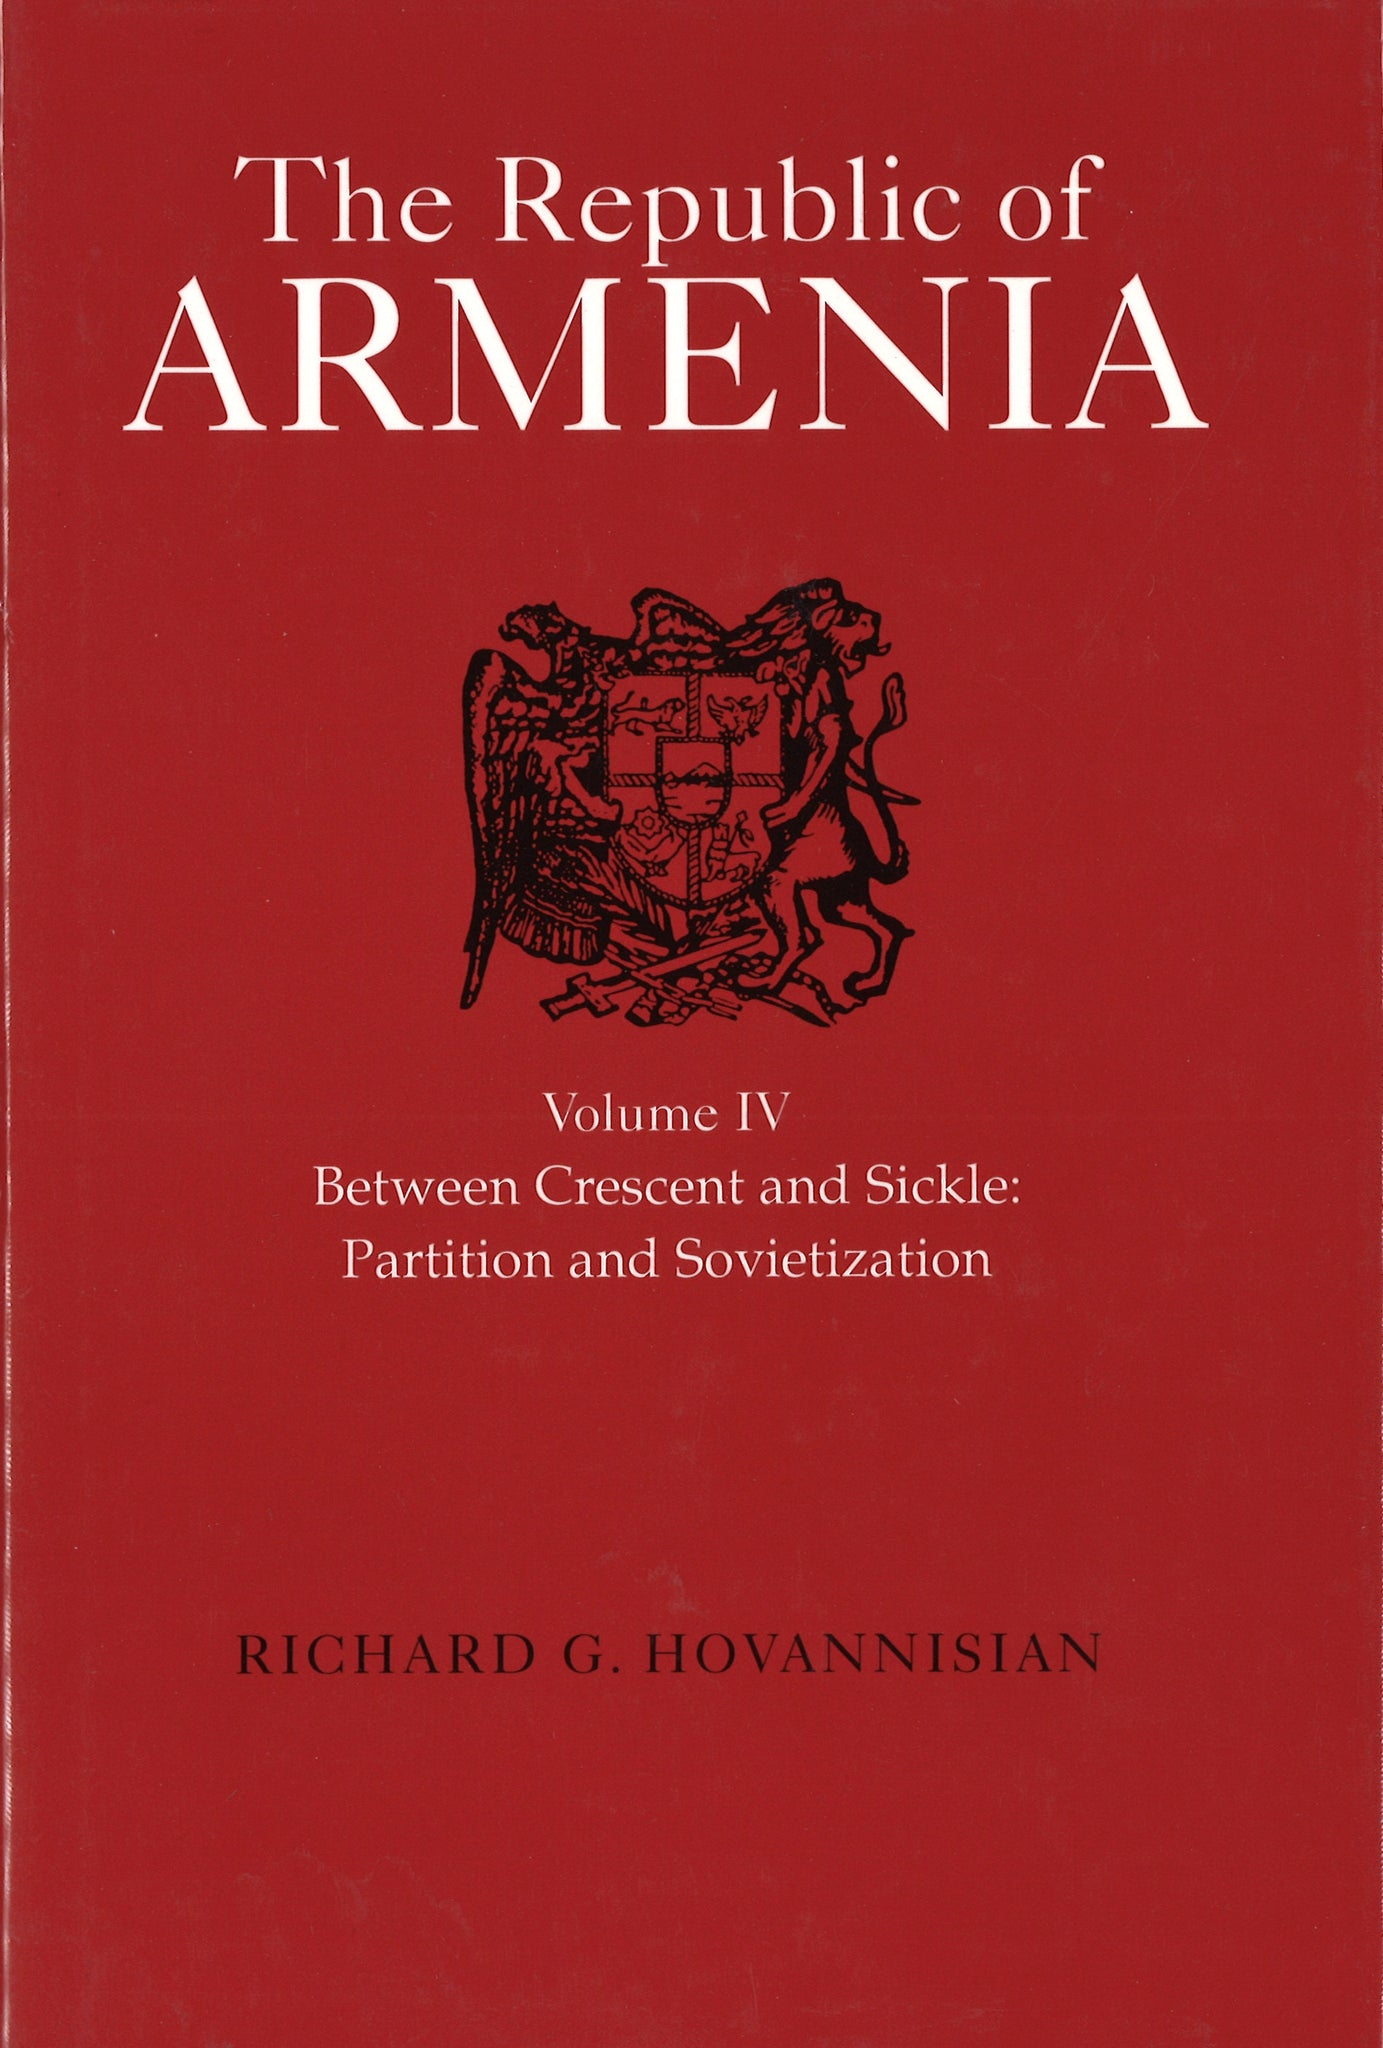 REPUBLIC of ARMENIA, VOL IV: Between Crescent and Sickle: Partition and Sovietization